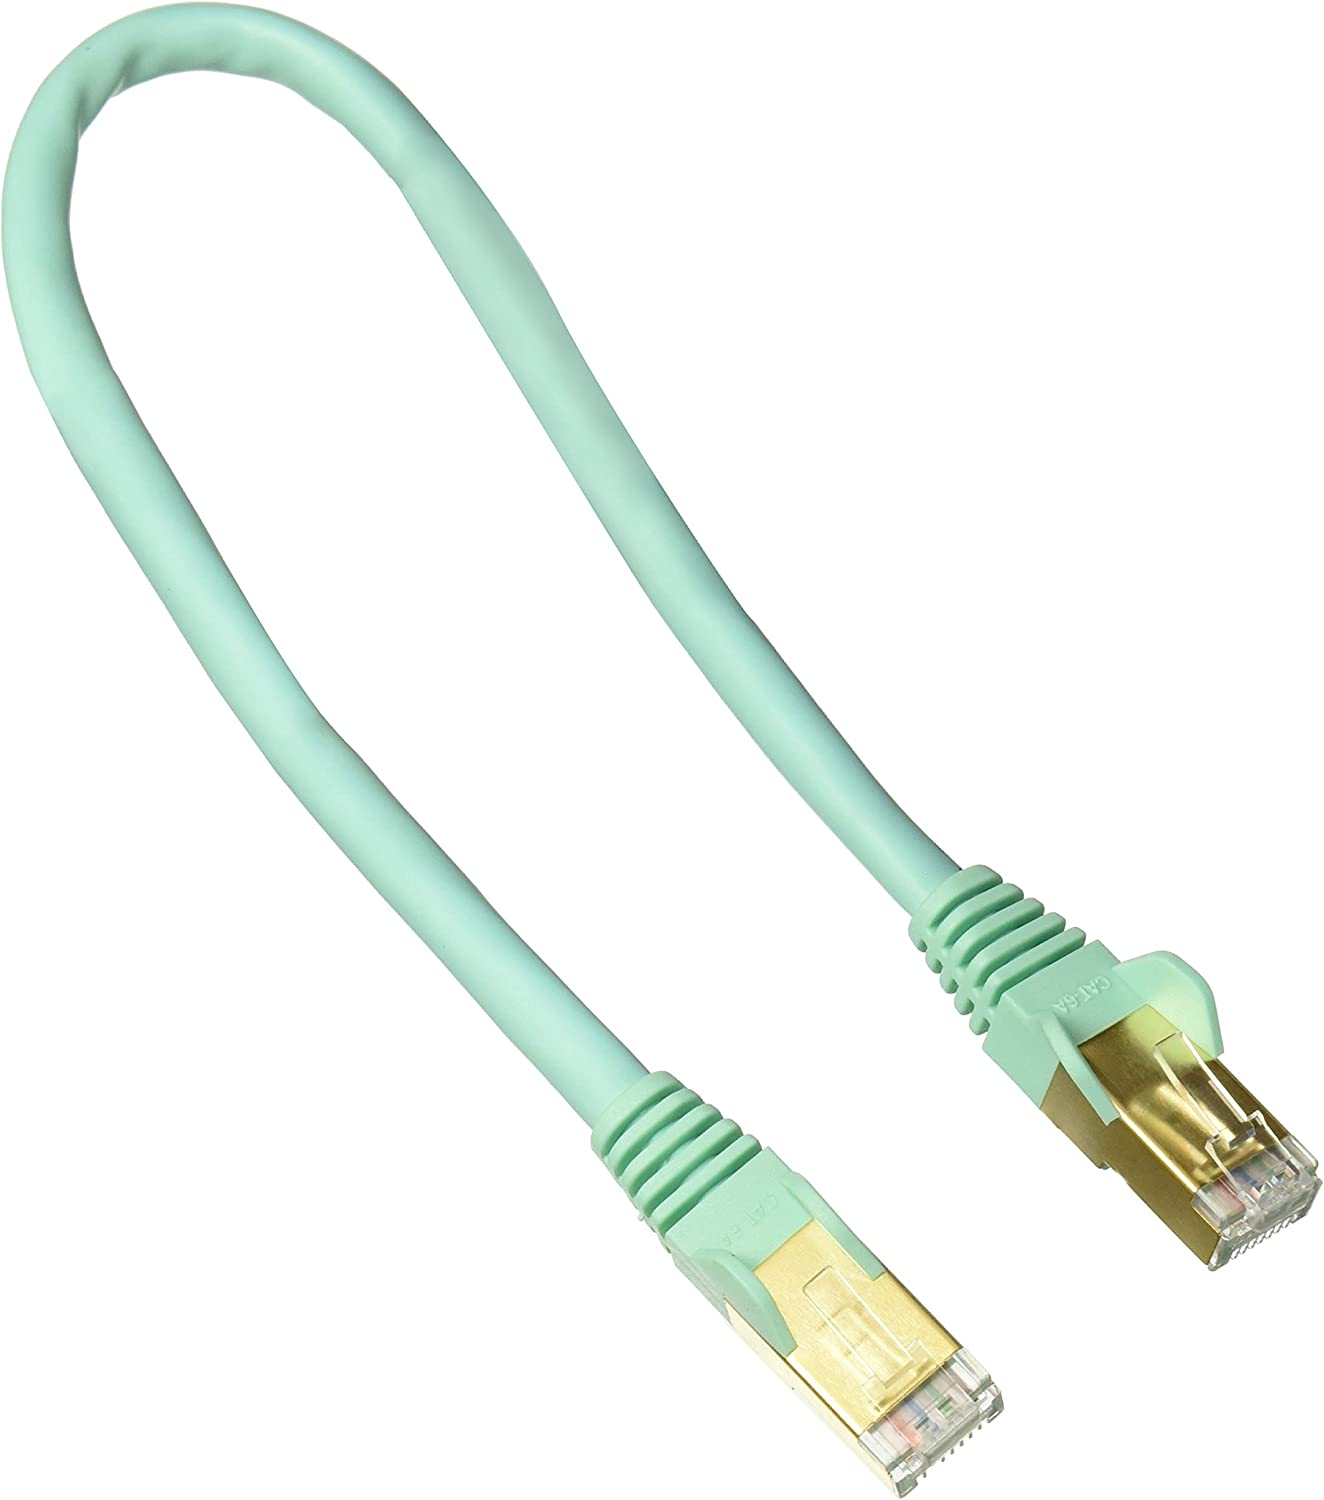 Add-onputer Peripherals L Addon 10pk 5ft Rj-45 Cat6a Patch Cable